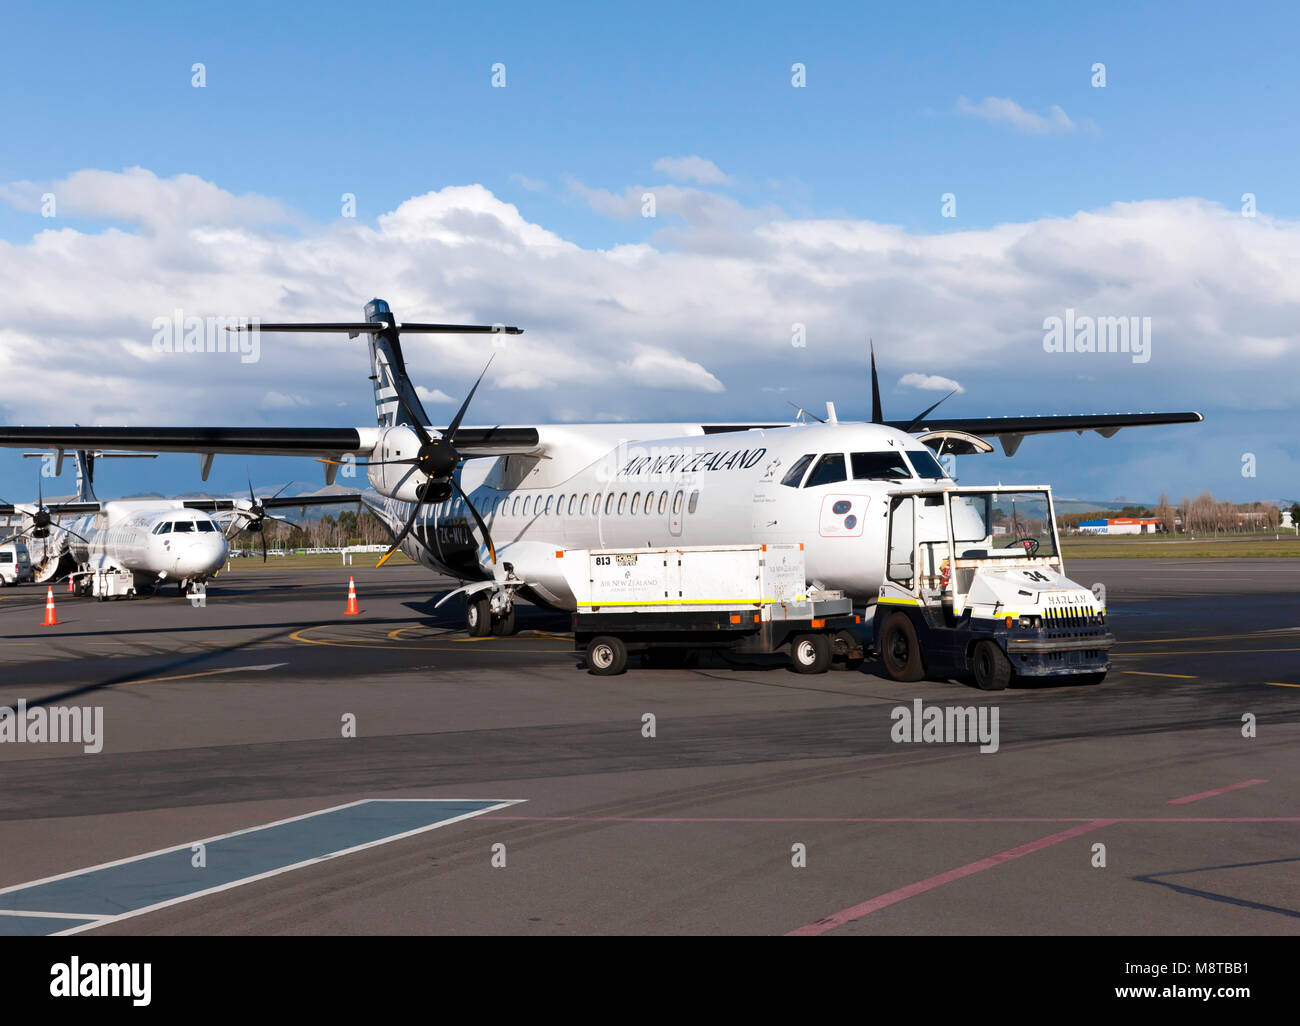 An Air New Zealand  ATR 72-600 aircraft,  operated by Mount Cook Airlines after landing at Christchurch International - Stock Image